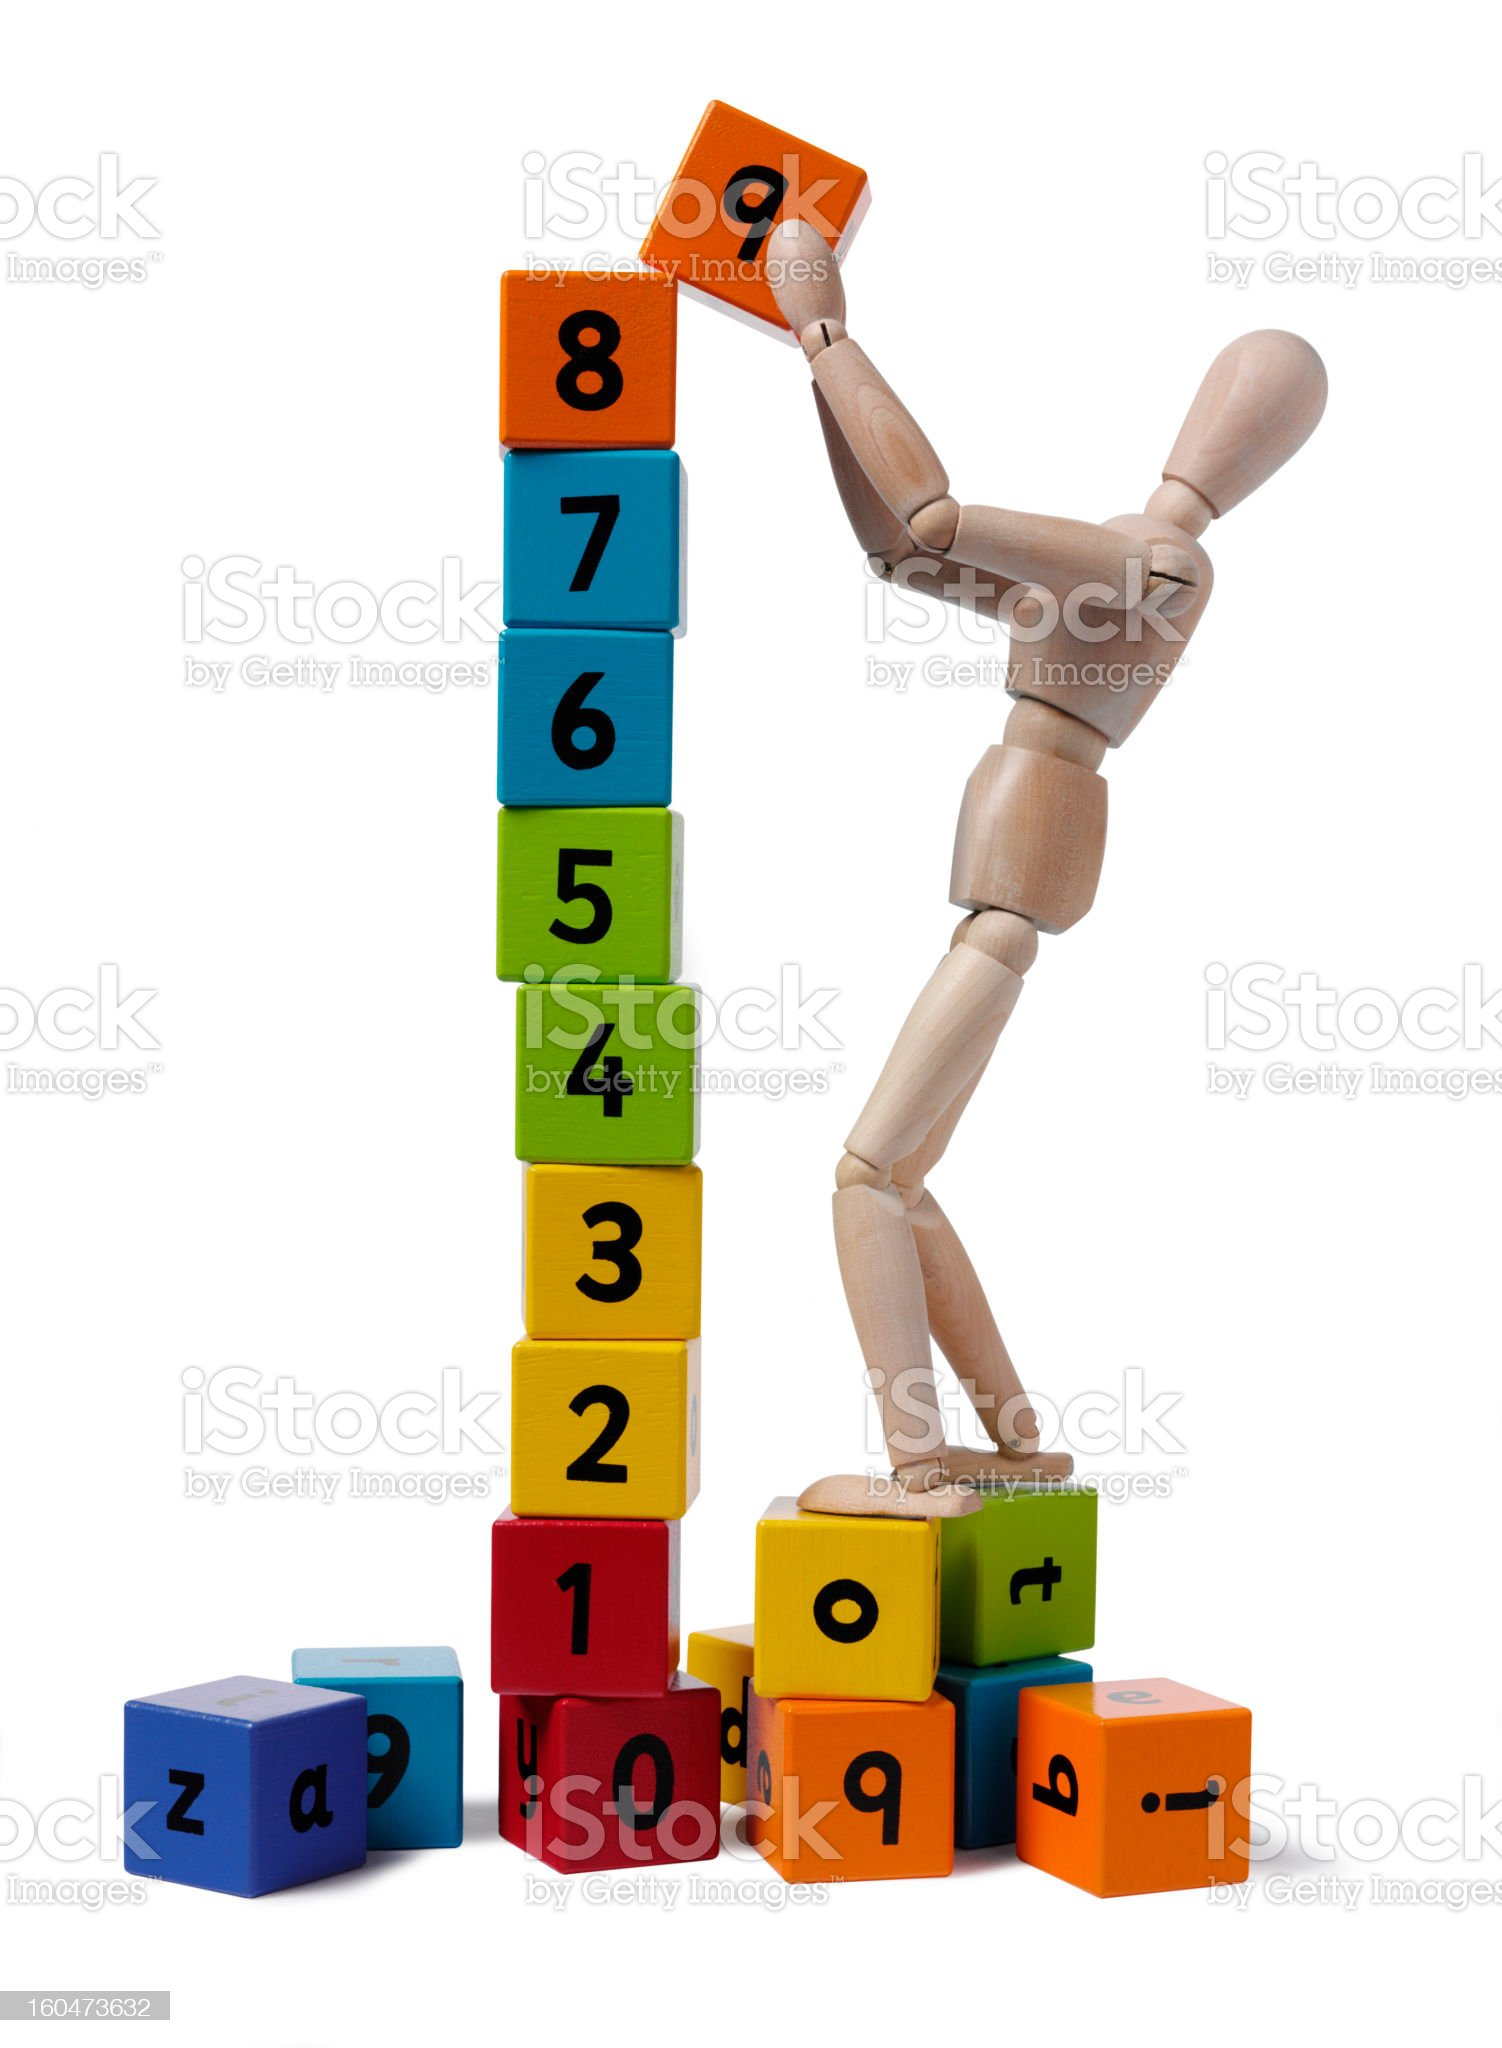 Mannequin and Numbered Blocks royalty-free stock photo